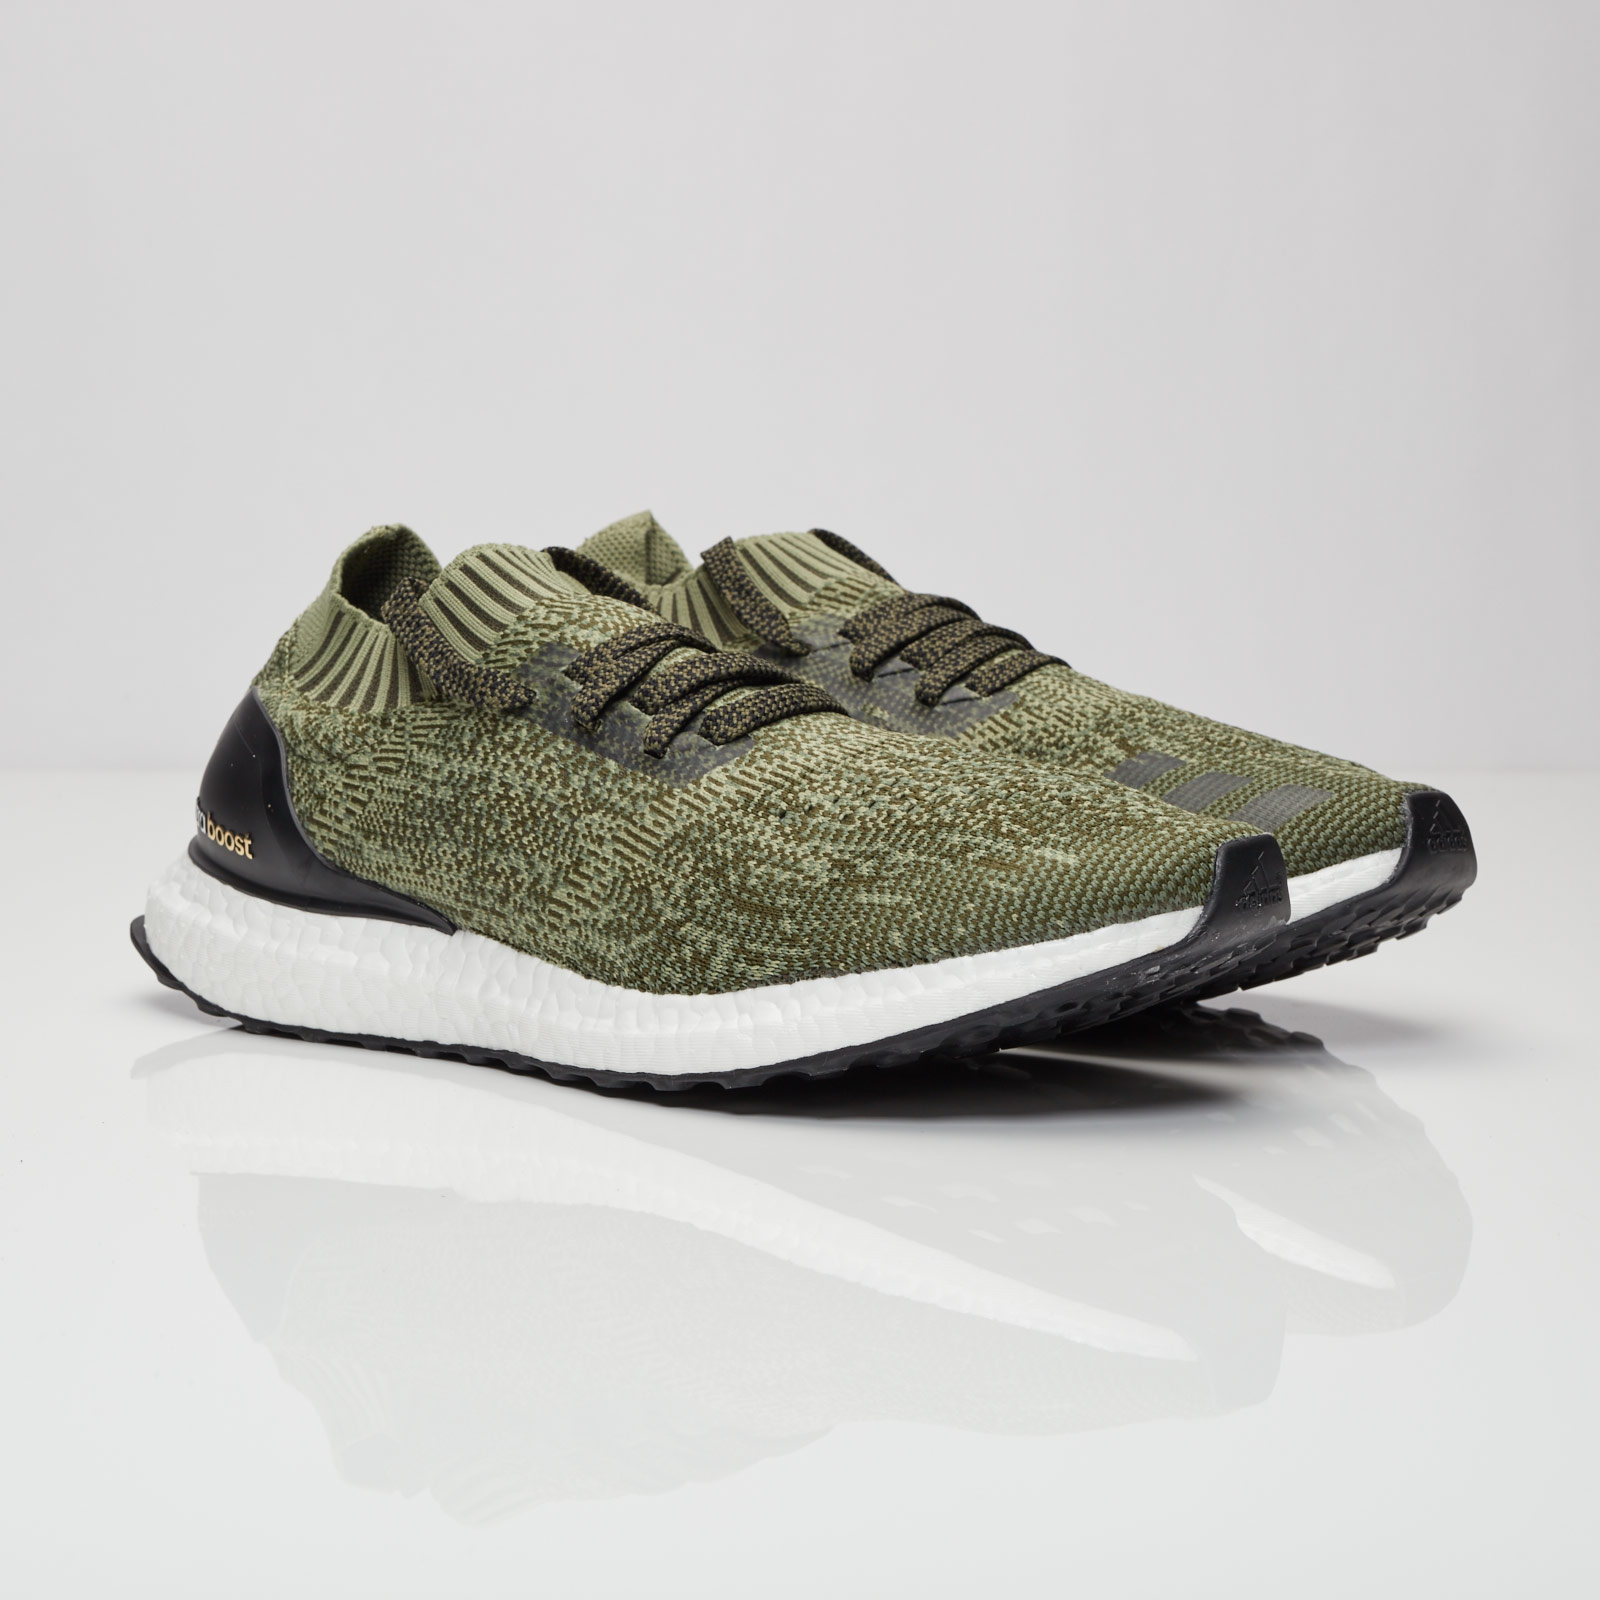 separation shoes 223e5 f8da7 adidas Ultraboost Uncaged m